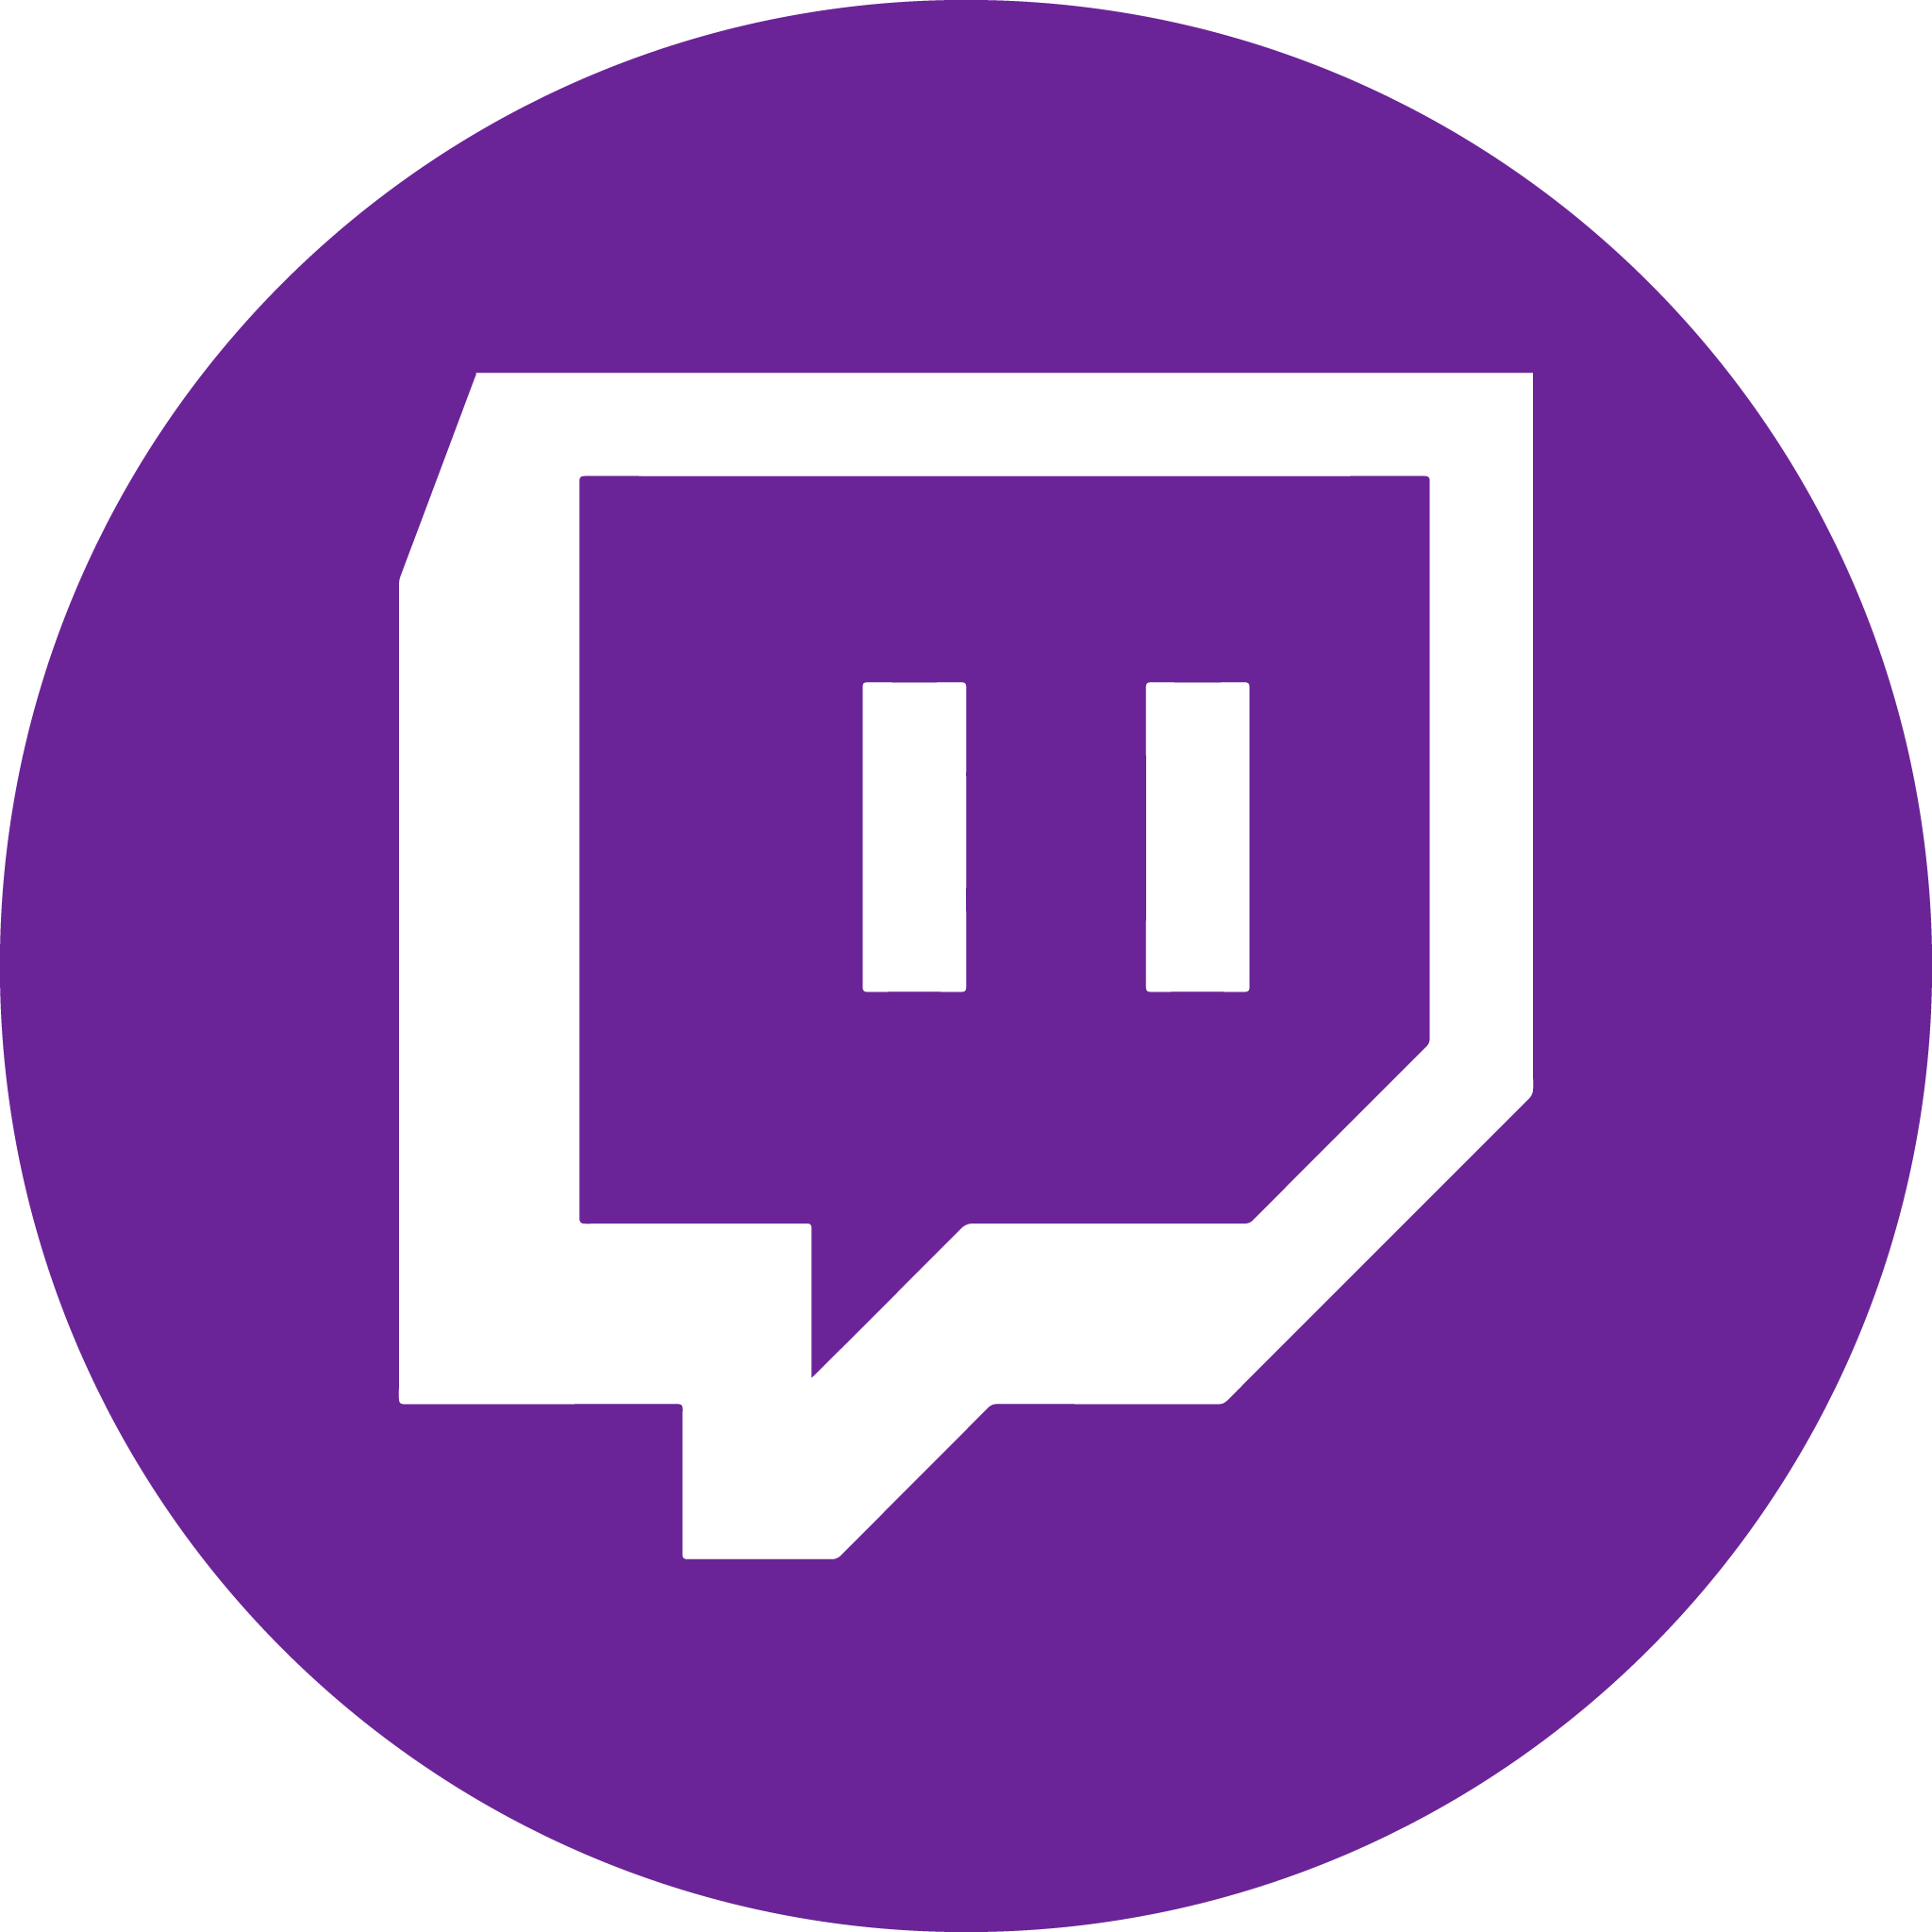 transparent background twitch logo png